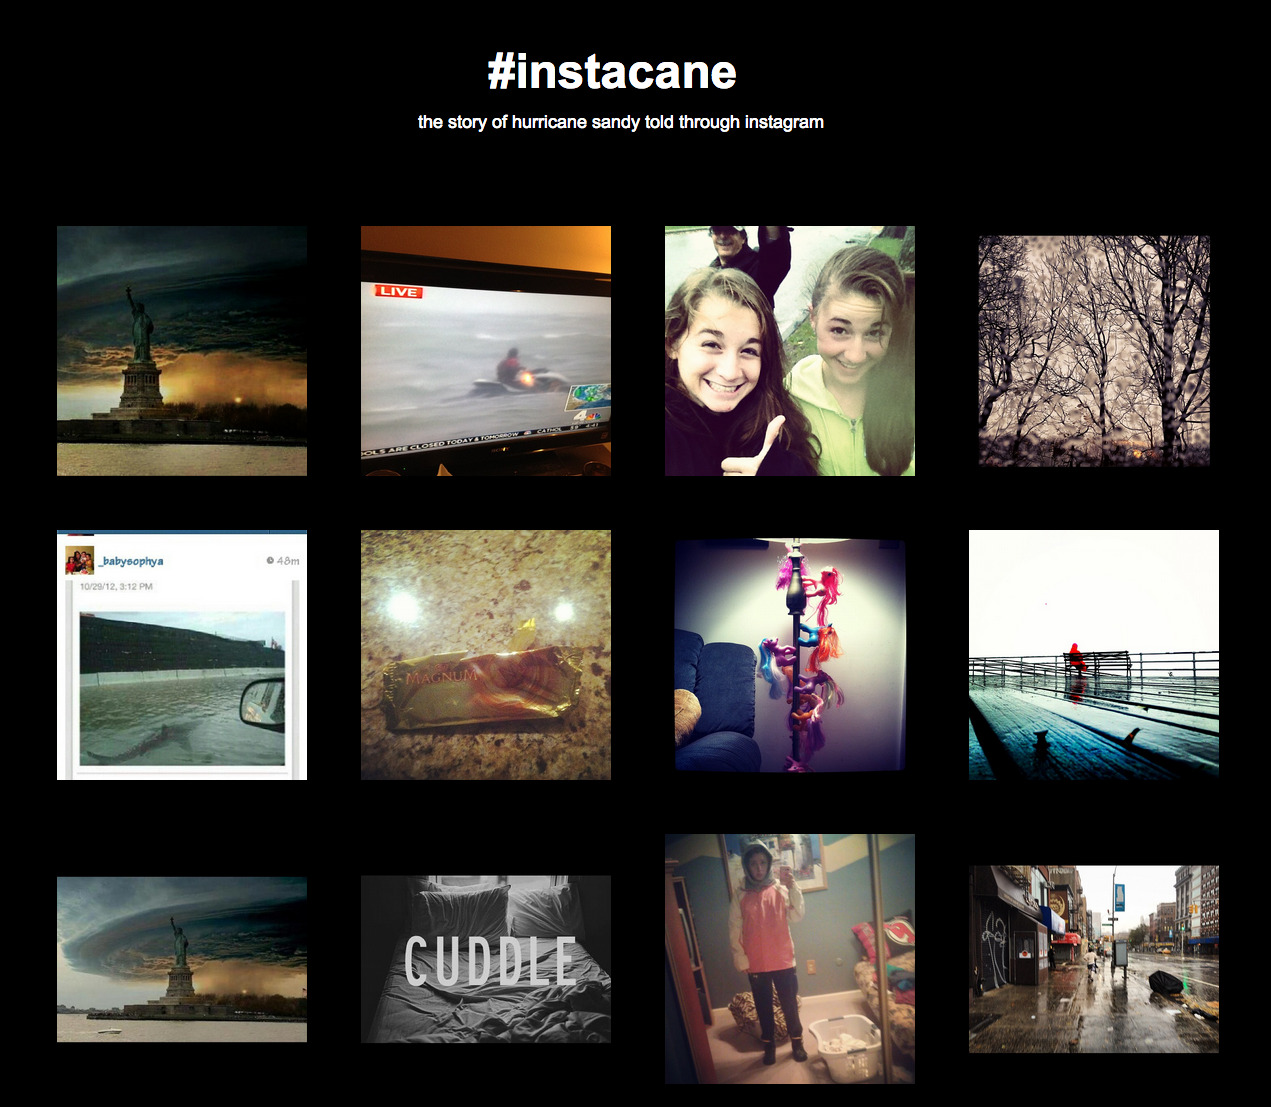 photojojo:  If you're wondering what's going on over on the East Coast, #instacane is gathering photos of Hurricane Sandy from Instagram. What kind of photos will you see? Memes, Jersey Shore reality stars looking bored, and actual photos of the storm! #Instacane — Hurricane Sandy Told Through Instagram via Laughing Squid